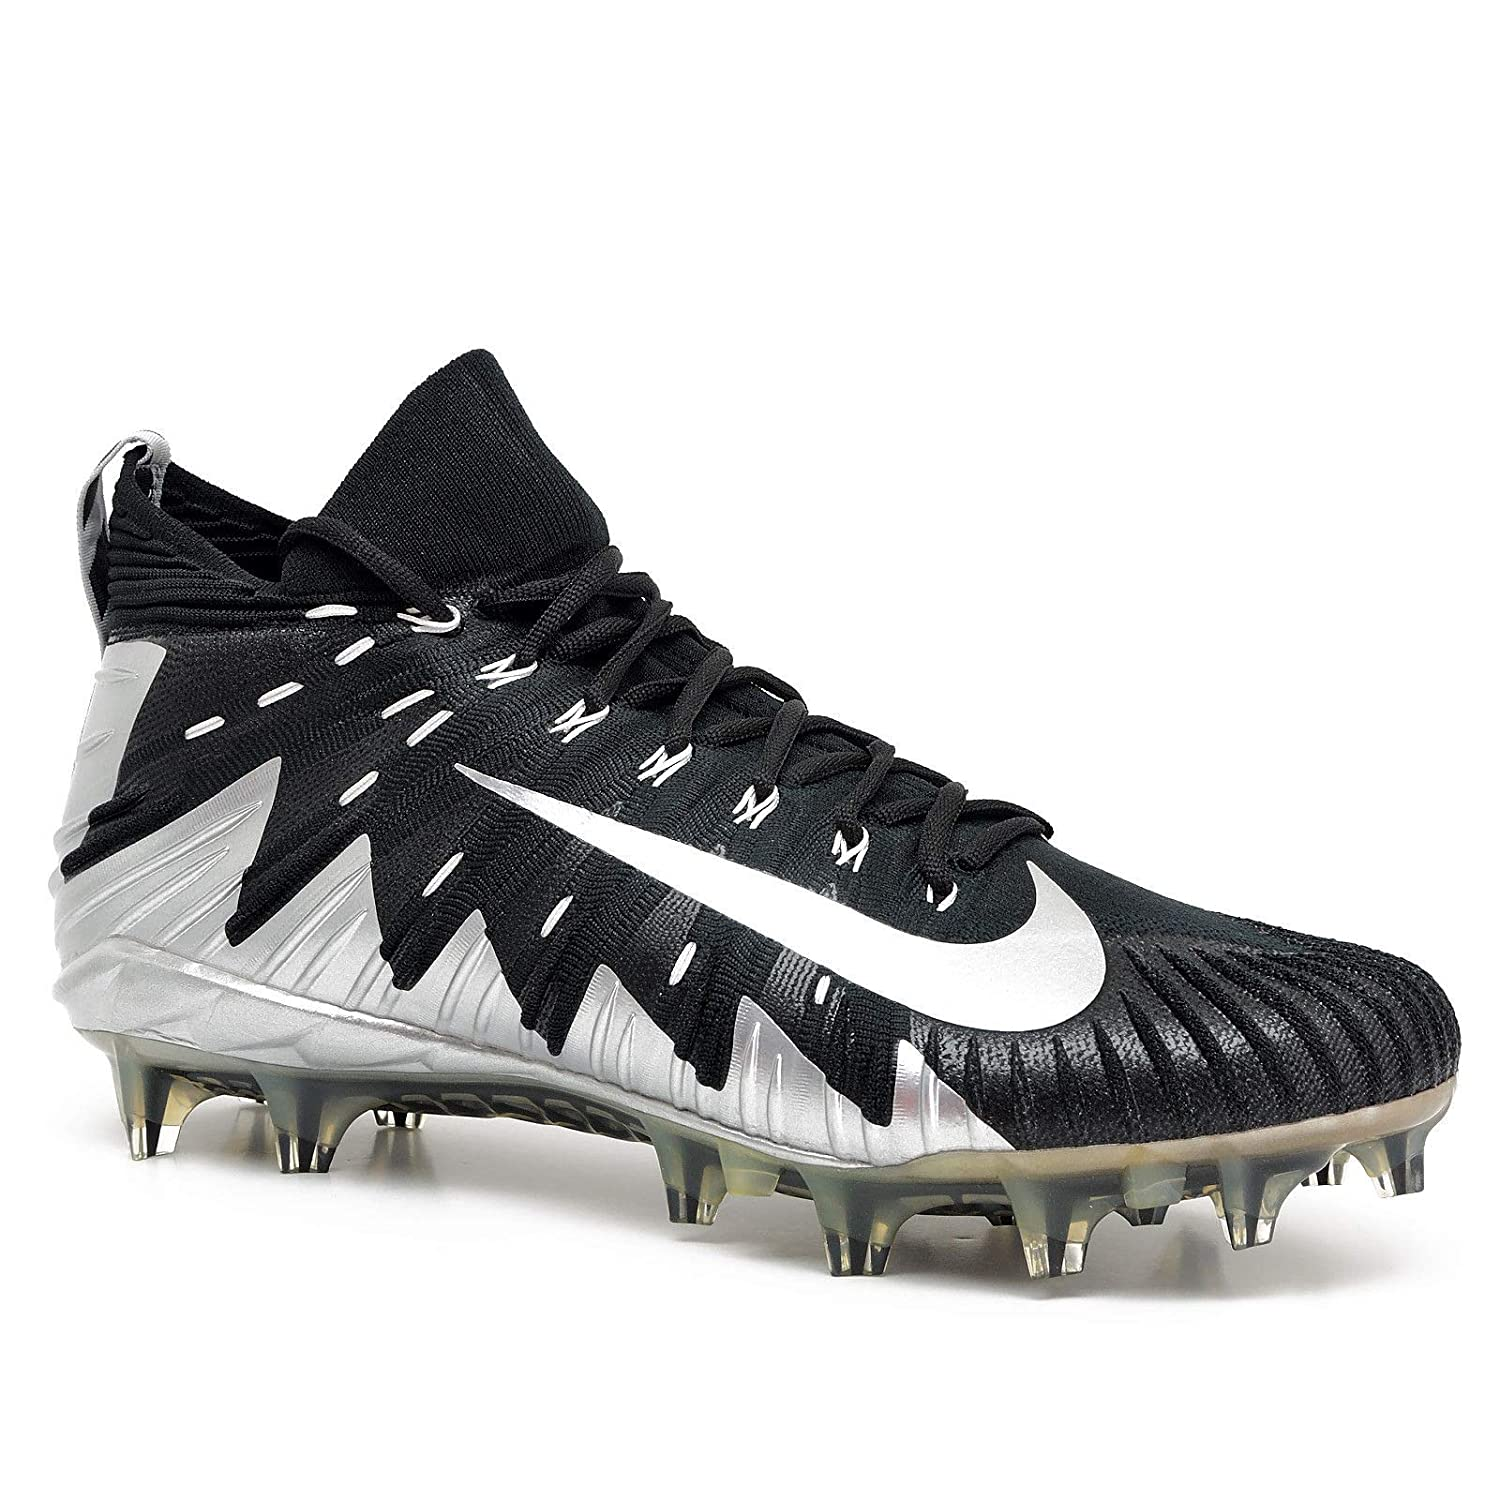 df83cdbe4 Amazon.com | Nike Alpha Menace Elite Black-Silver Men's Football Cleats  12.5 US | Football